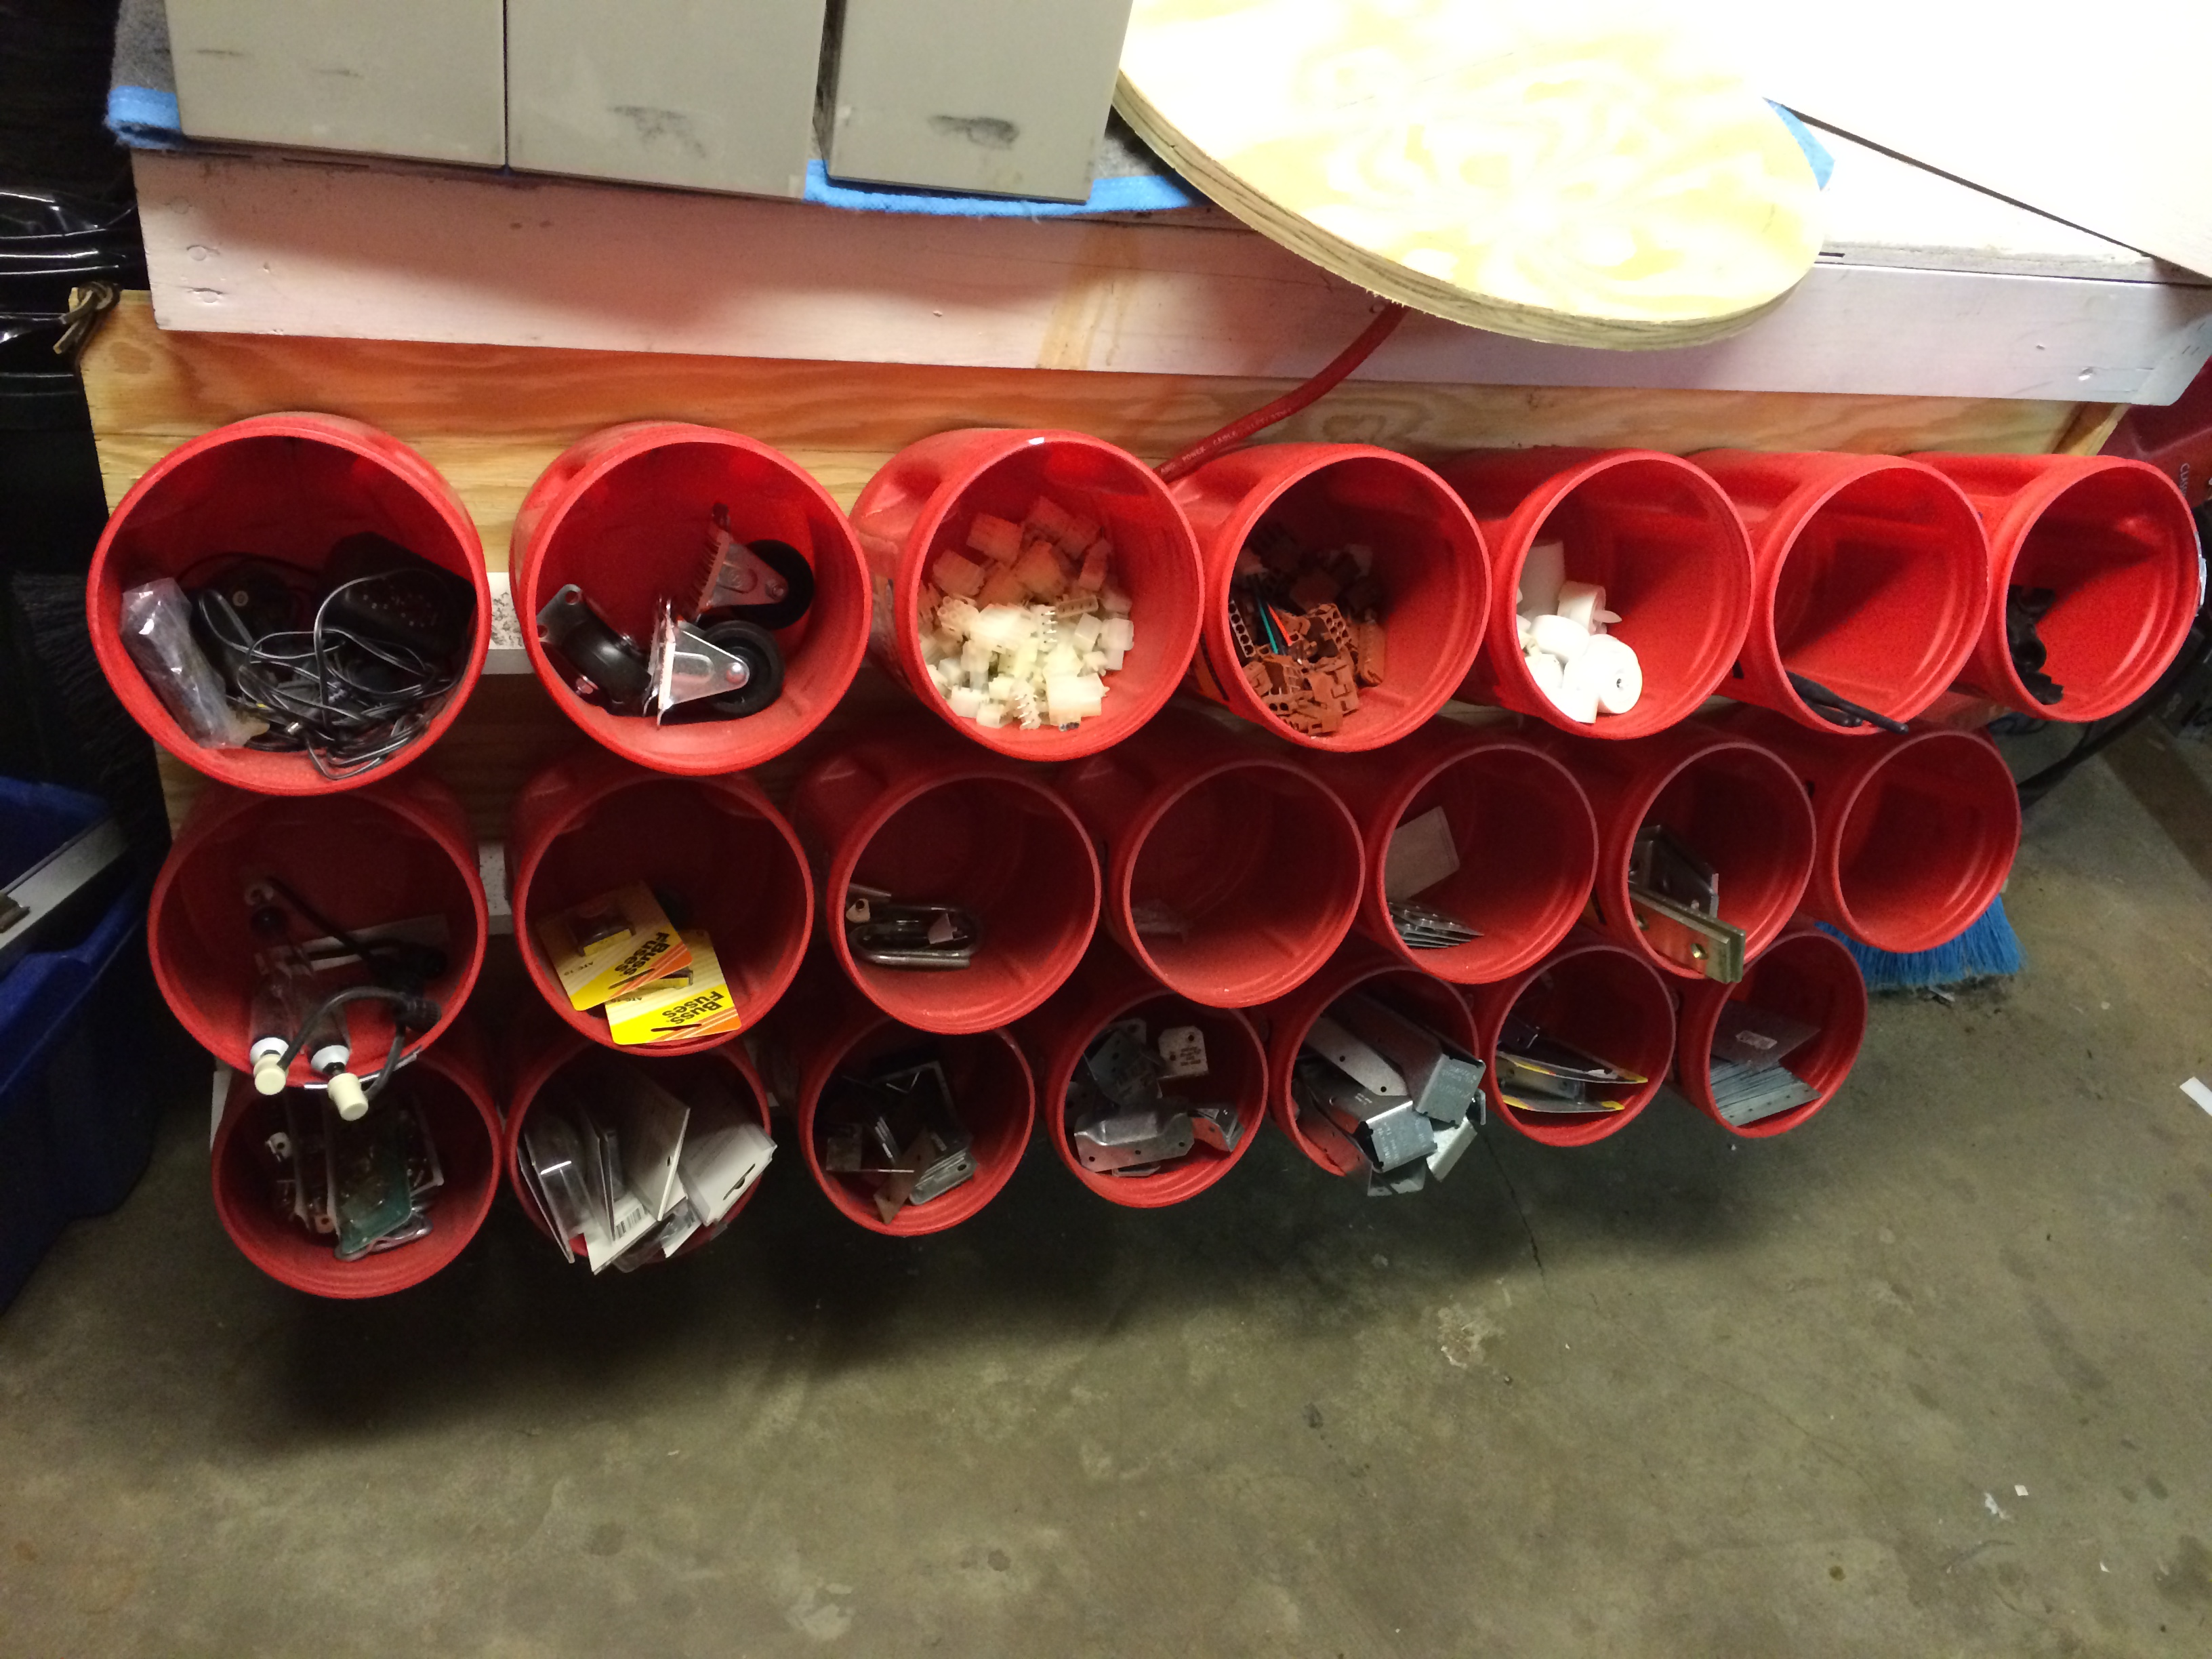 Picture of Storage Bin Rack From Recycled Plastic Coffee Containers